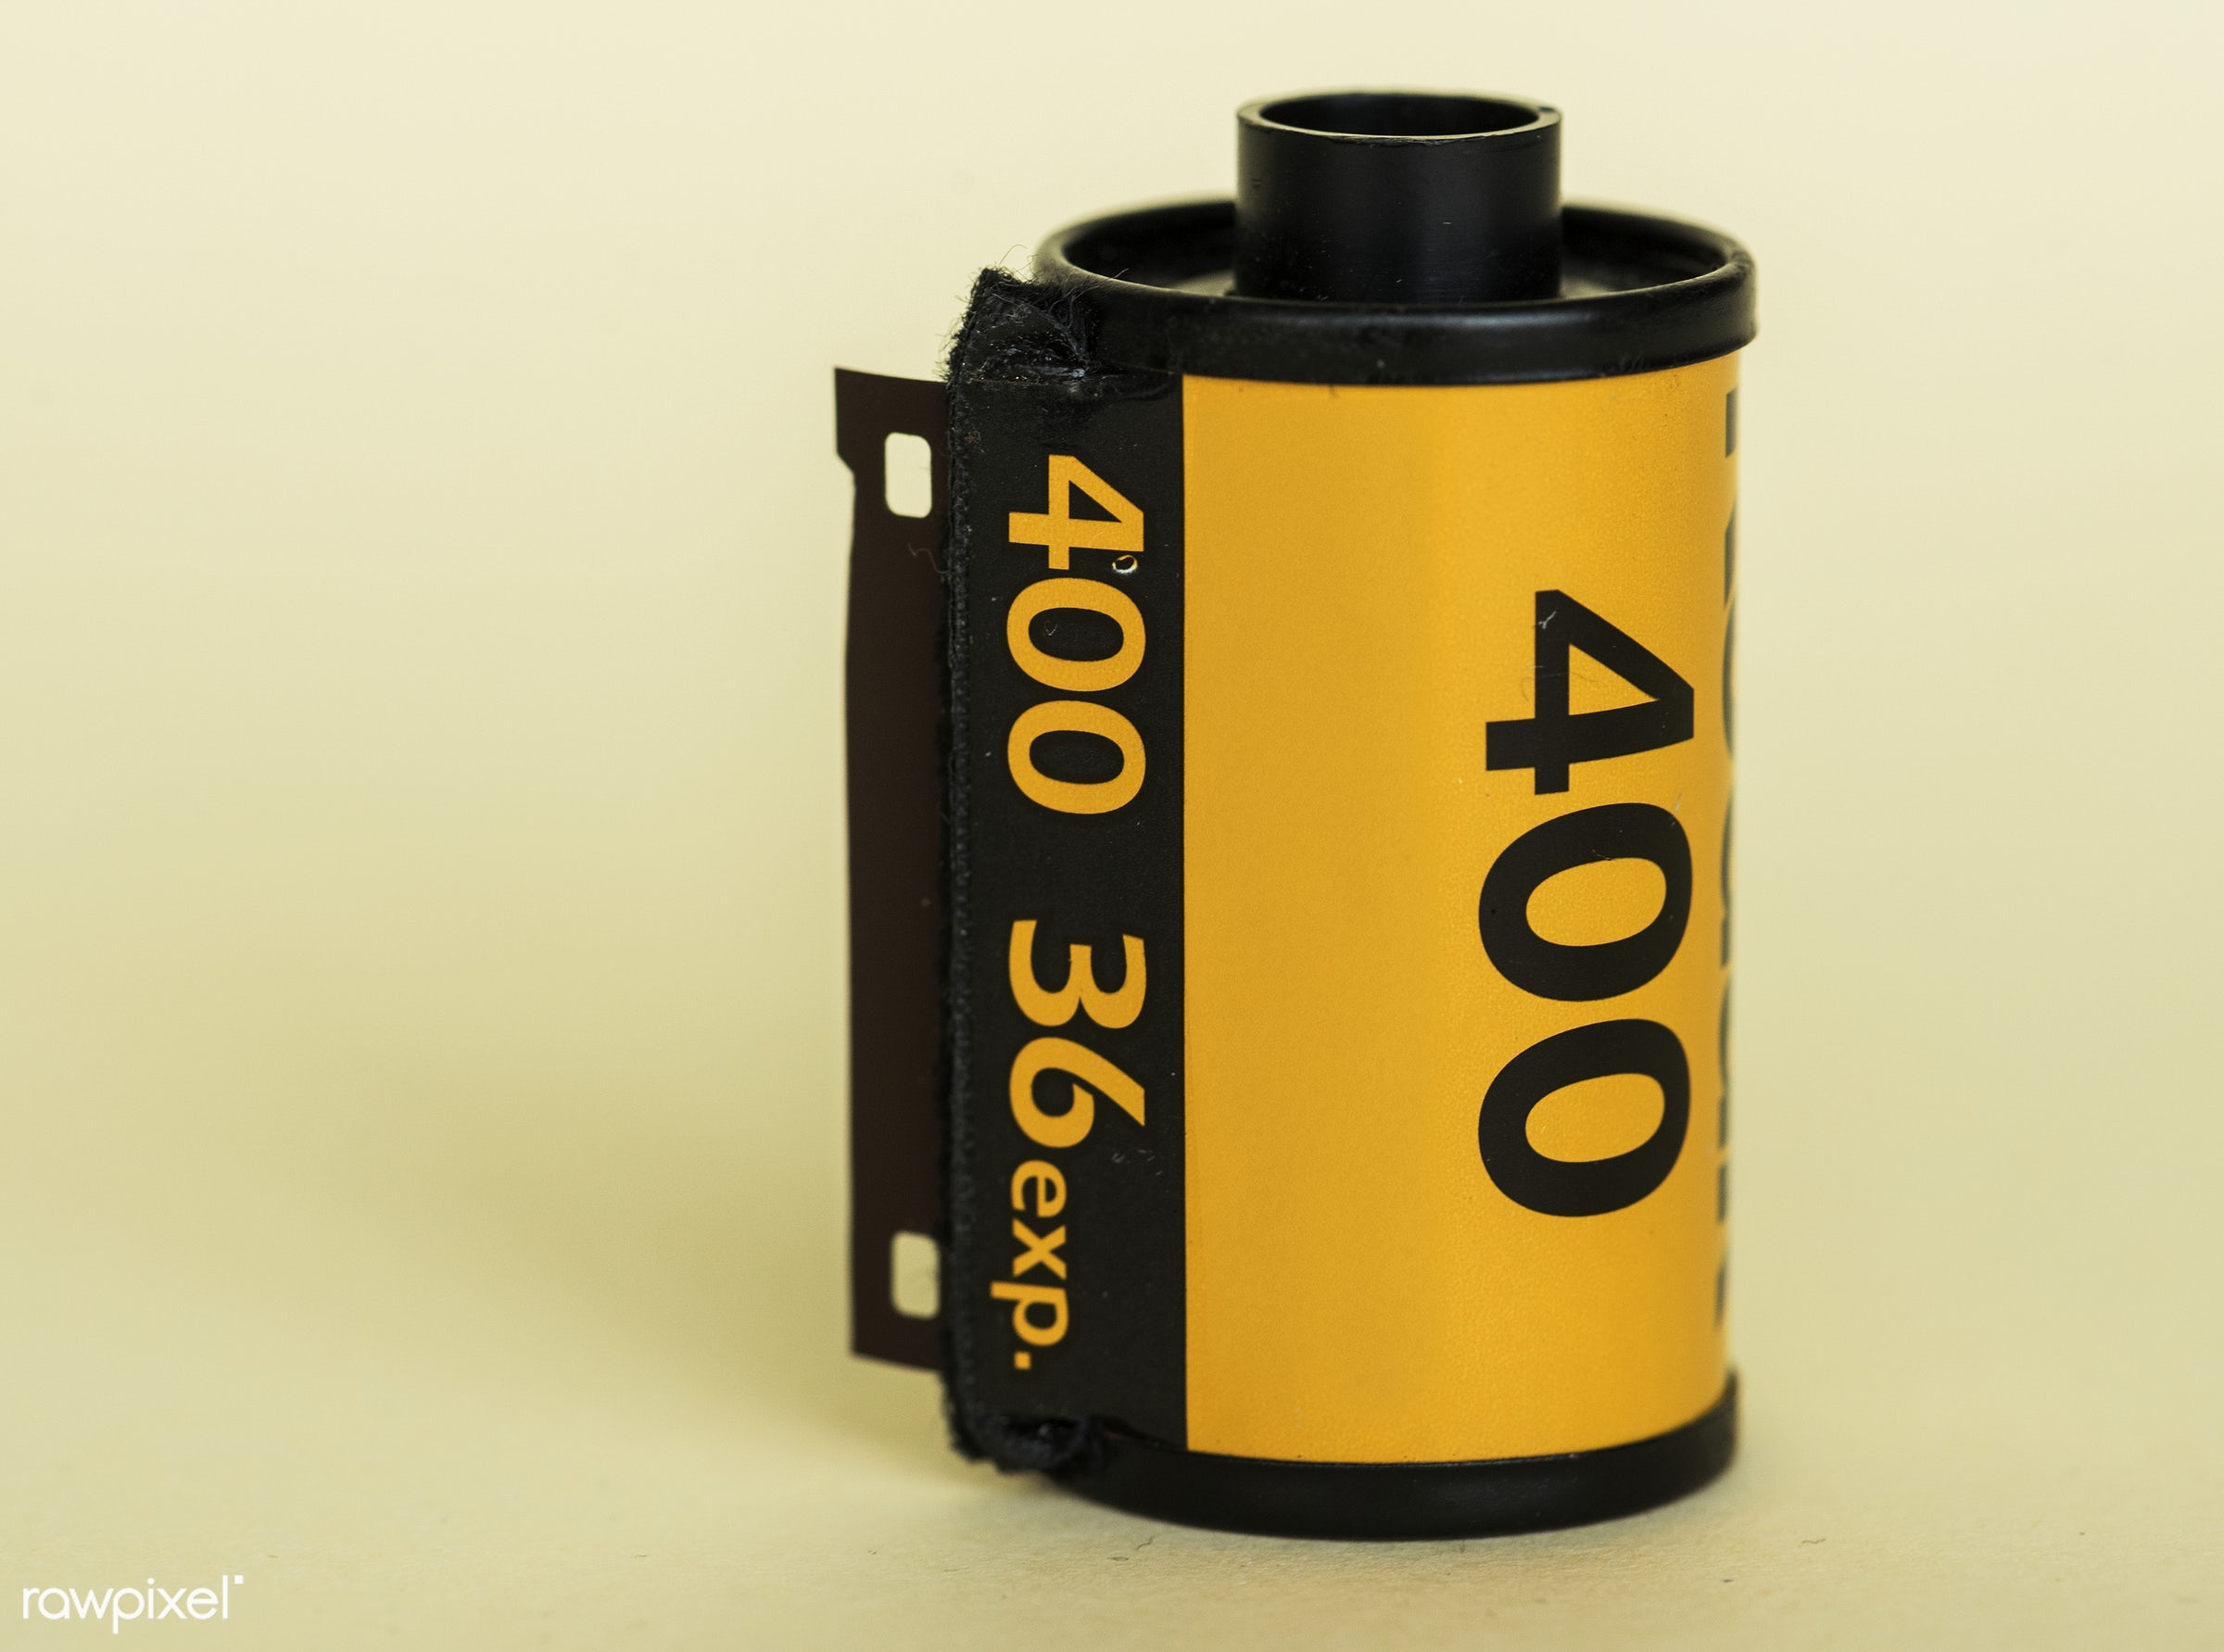 Film roll isolated - mockup, analog, blank, blank space, camera, camera film, cinema, classic, copy space, design space,...